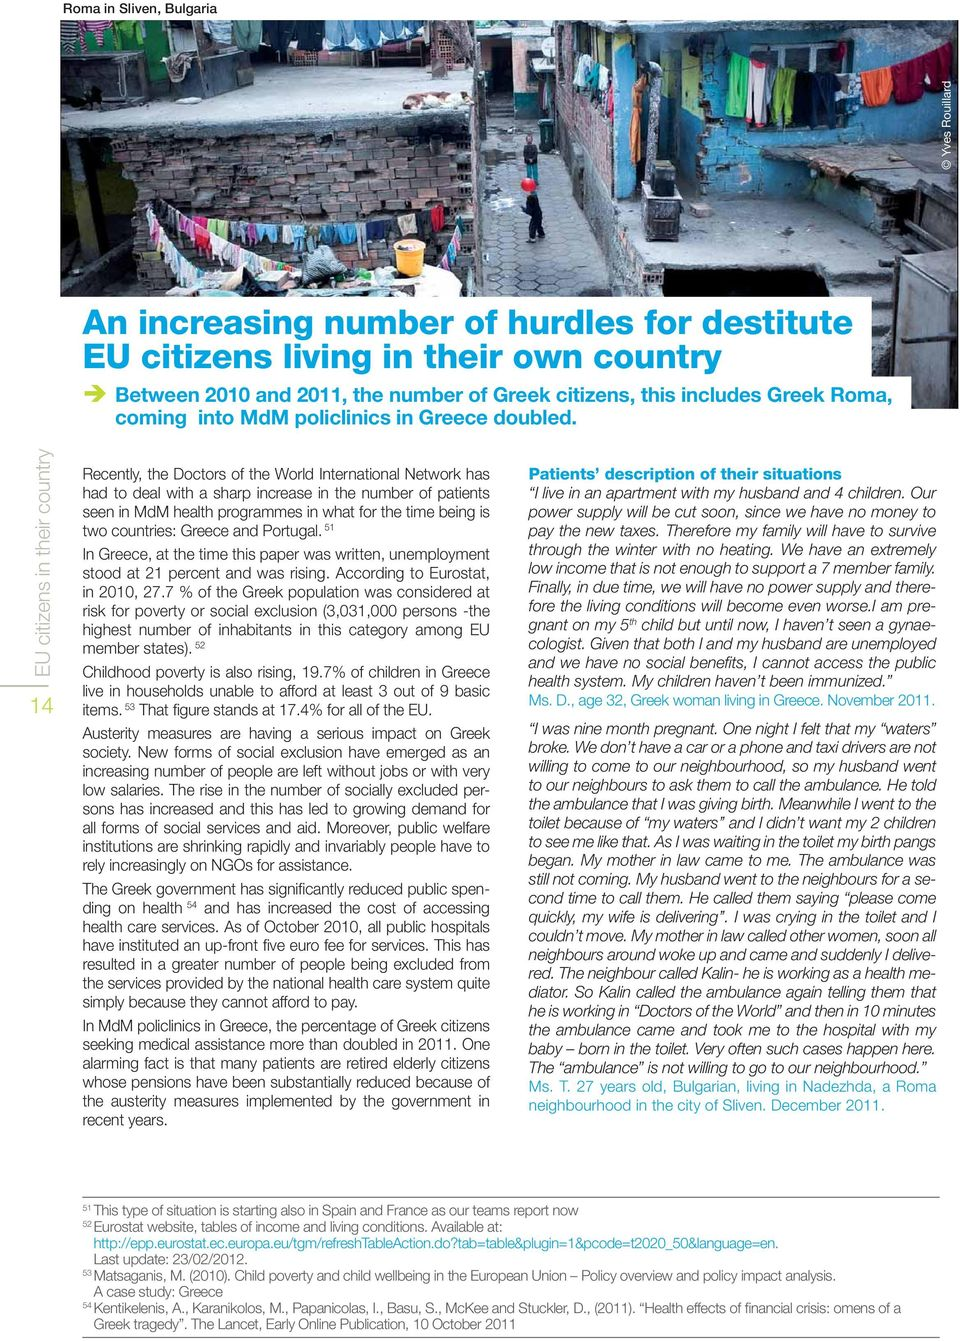 EU citizens in their country 14 Recently, the Doctors of the World International Network has had to deal with a sharp increase in the number of patients seen in MdM health programmes in what for the